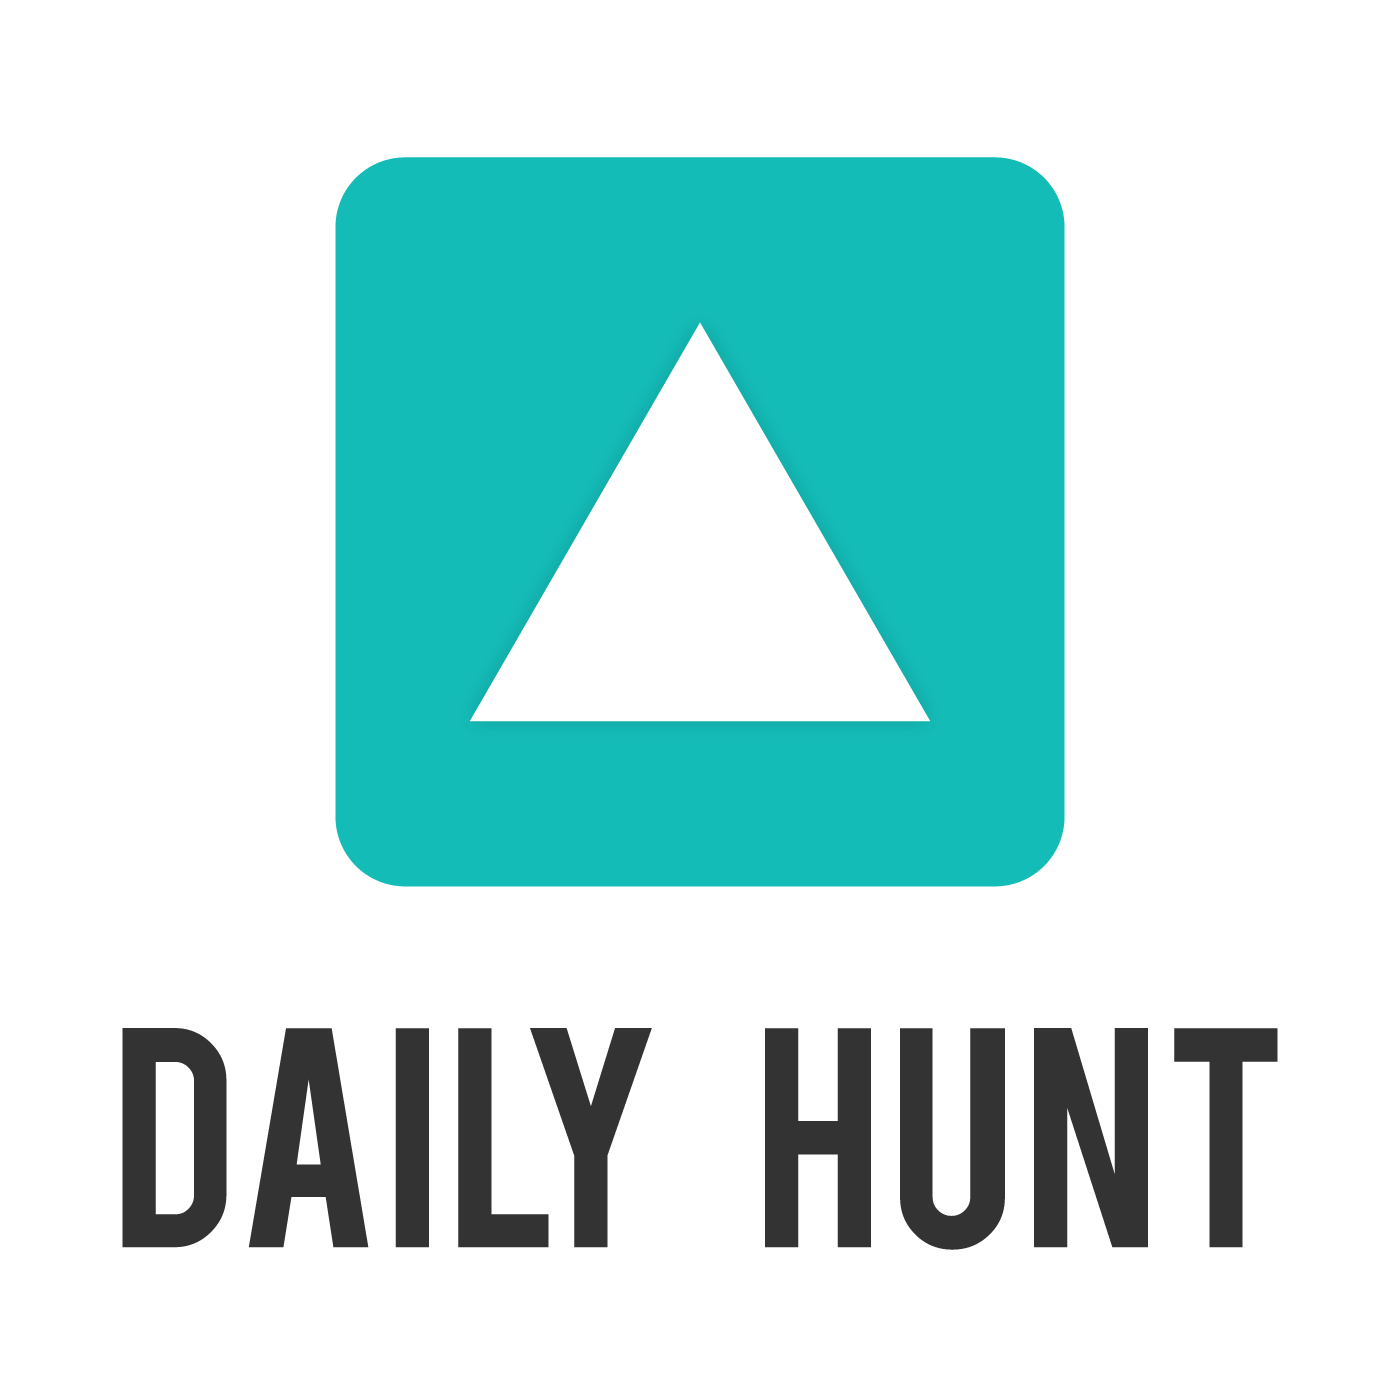 Daily Hunt: New Products, Startups & Founder Stories